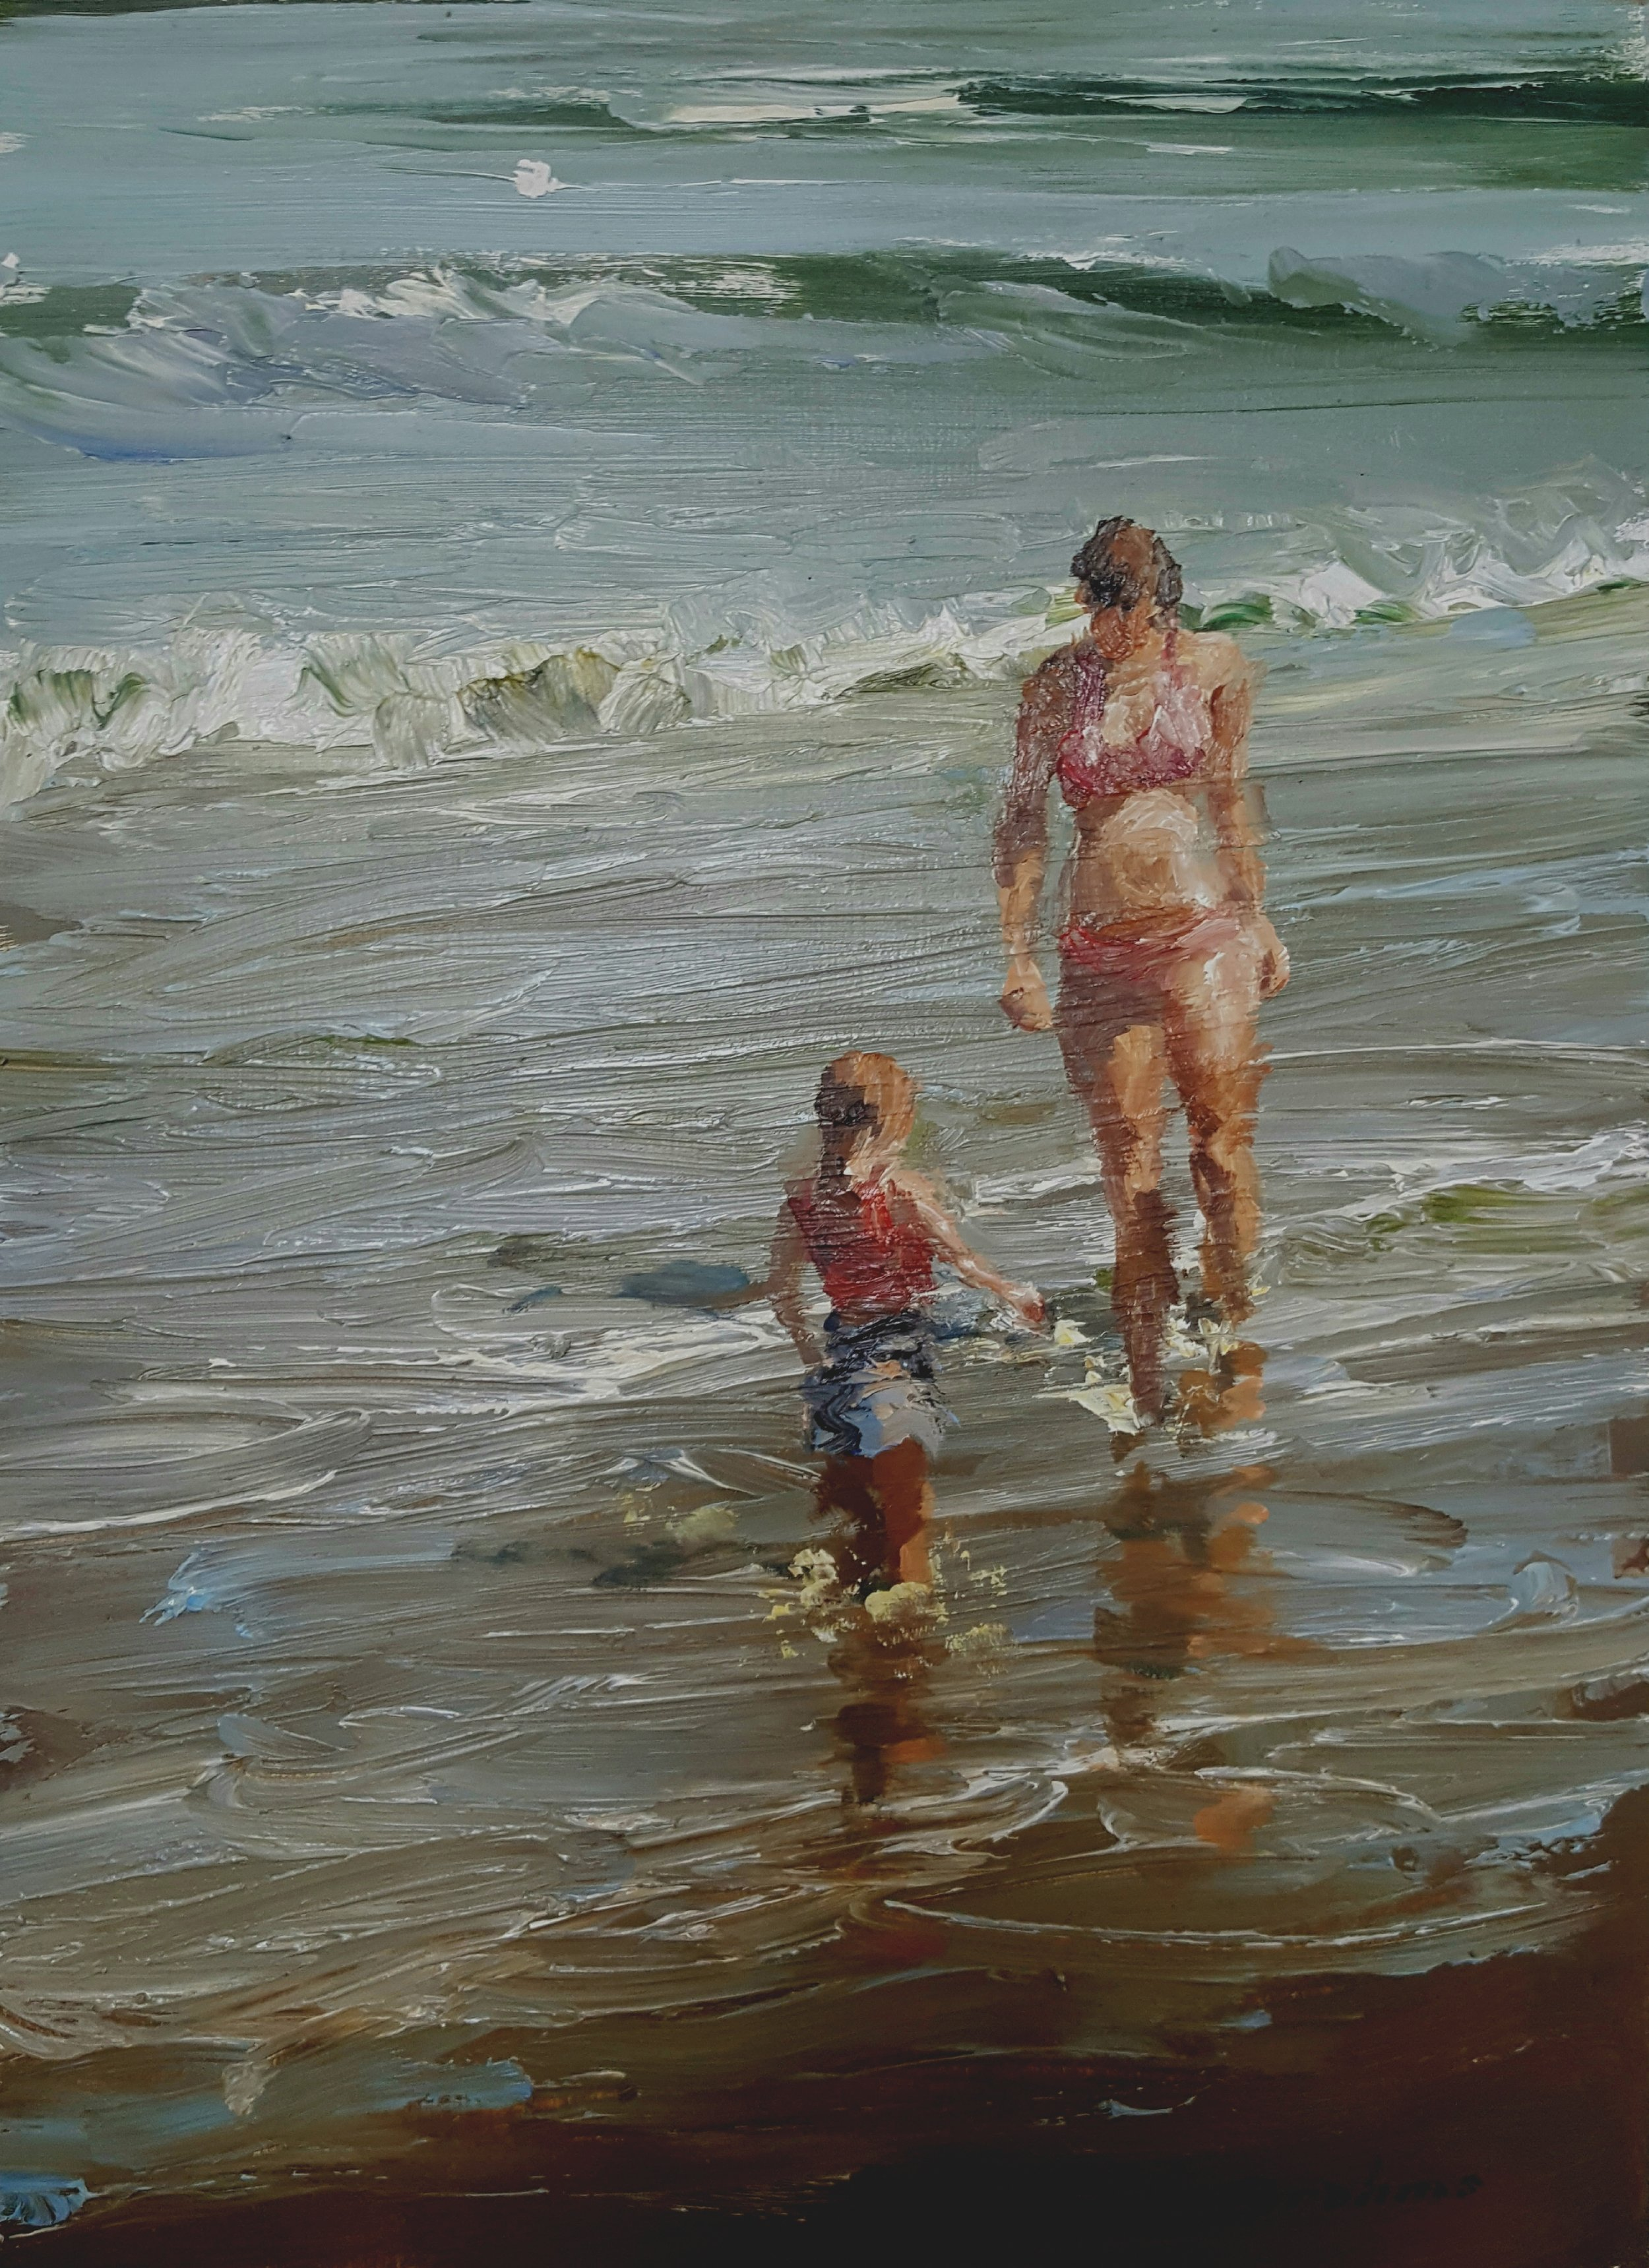 Woman and Child in the Surf